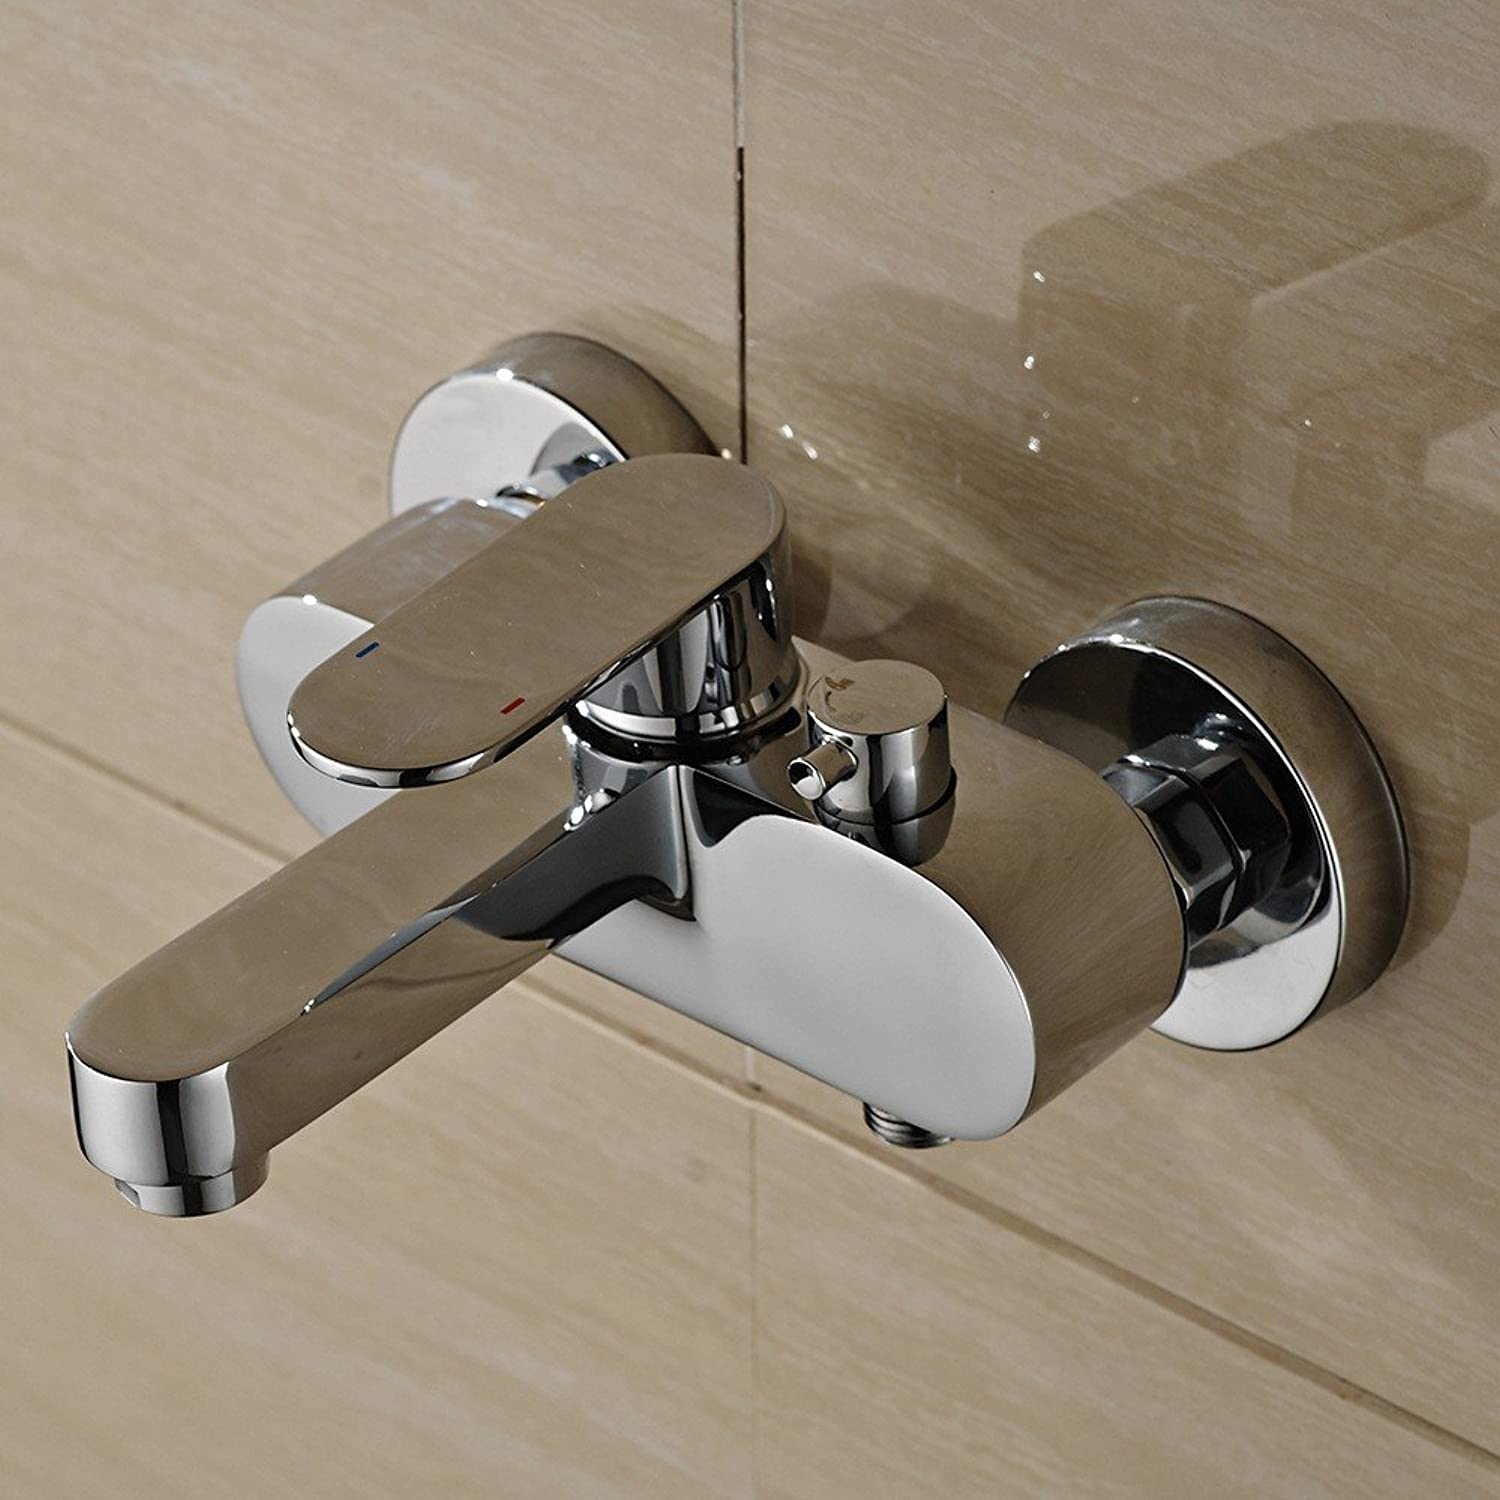 Bathroom shower faucet copper hot and cold water mixing valve simple bathroom wall-mounted